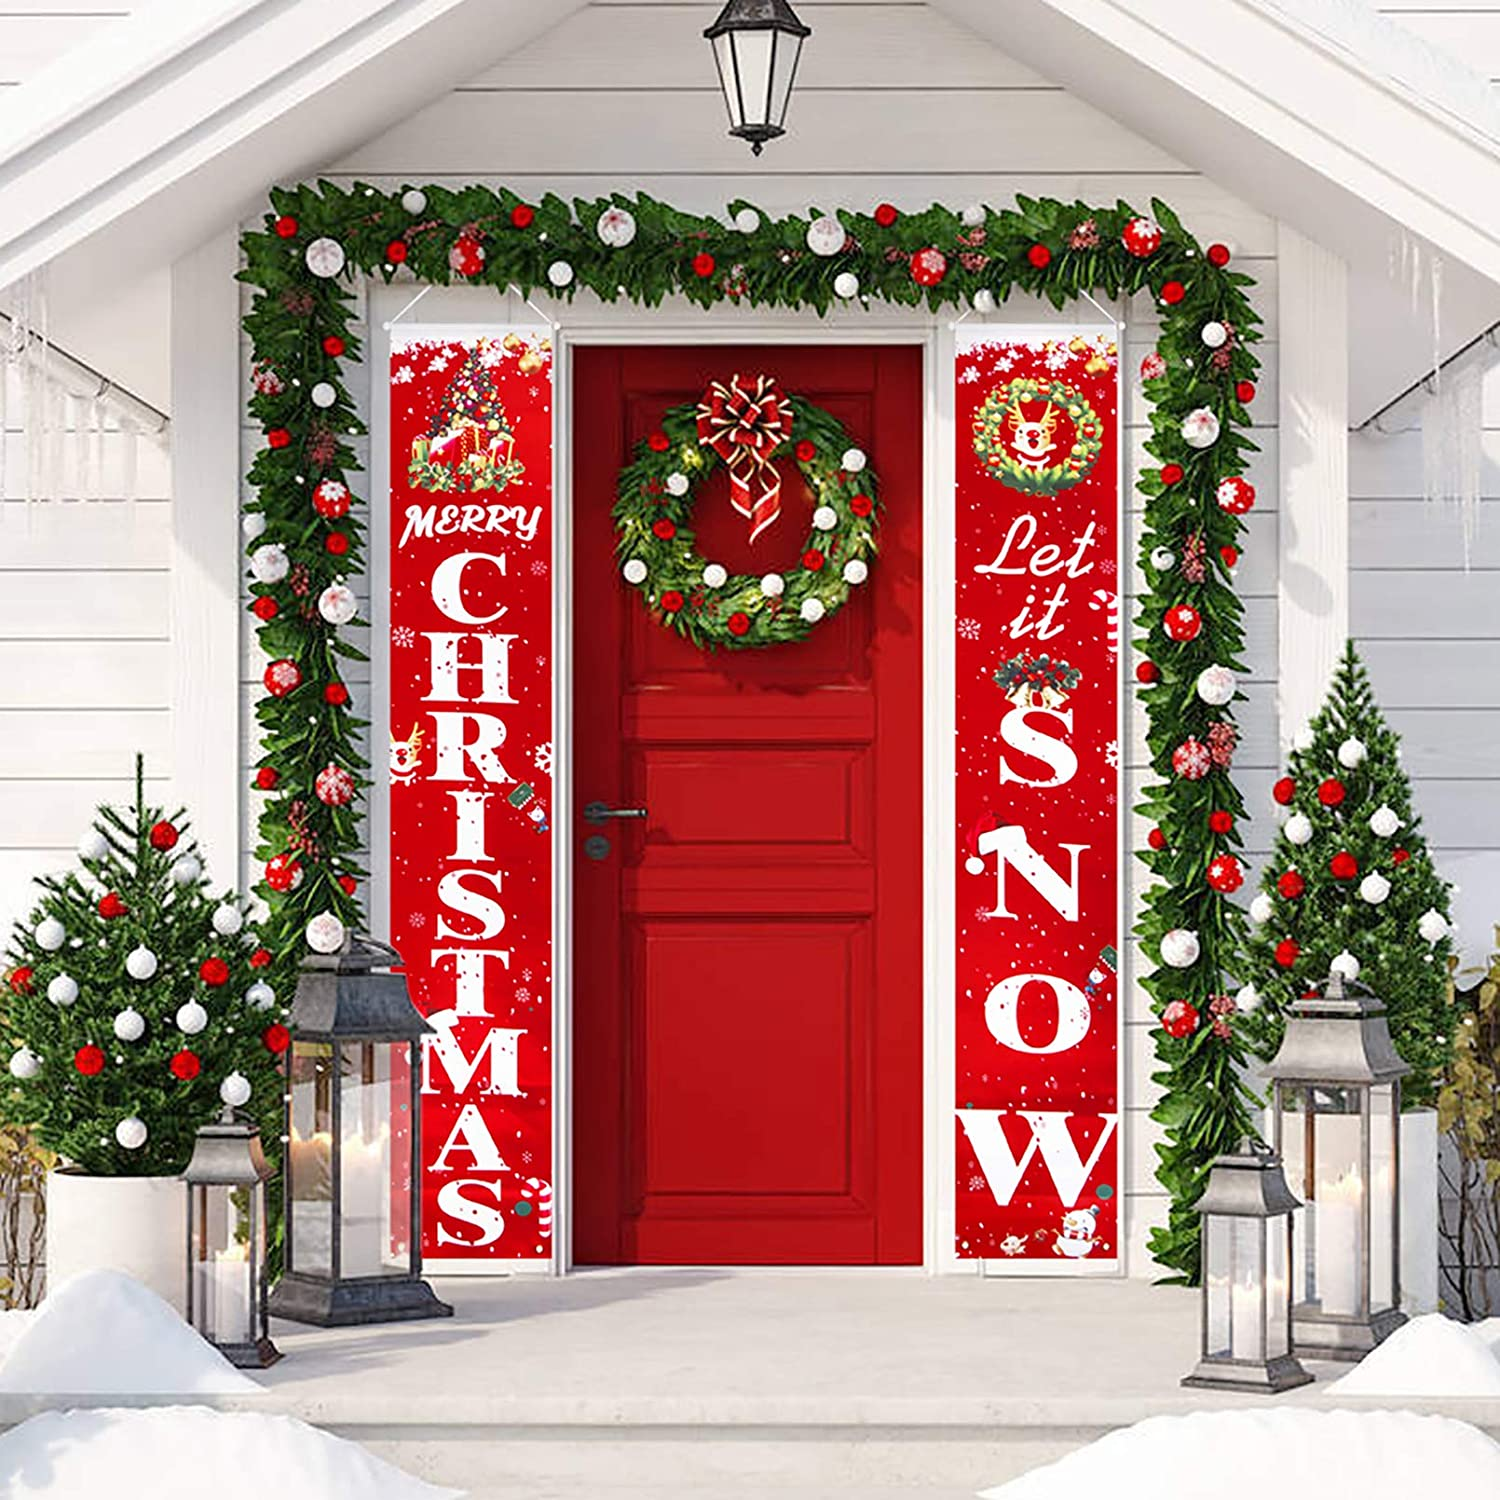 Merry Christmas Outdoor Banner Ornament Santa Claus Hanging Xmas Decoration Home